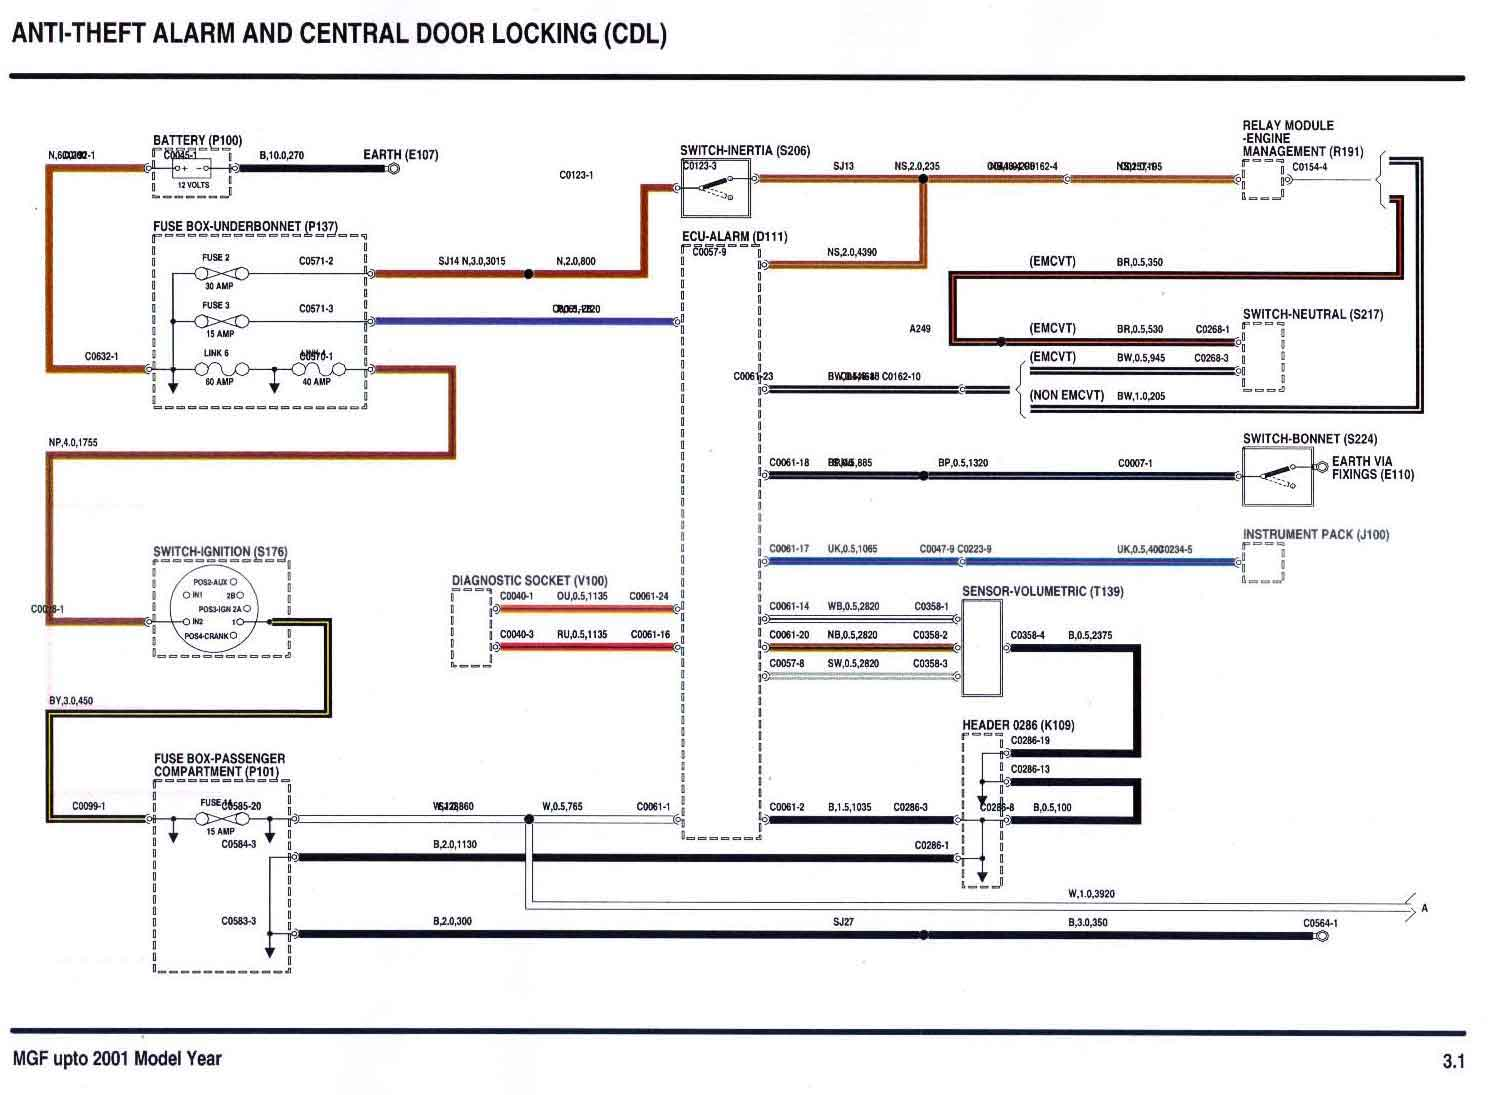 Rover 25 Central Locking Wiring Diagram Schematic Diagrams Land Discovery Trusted Hvac